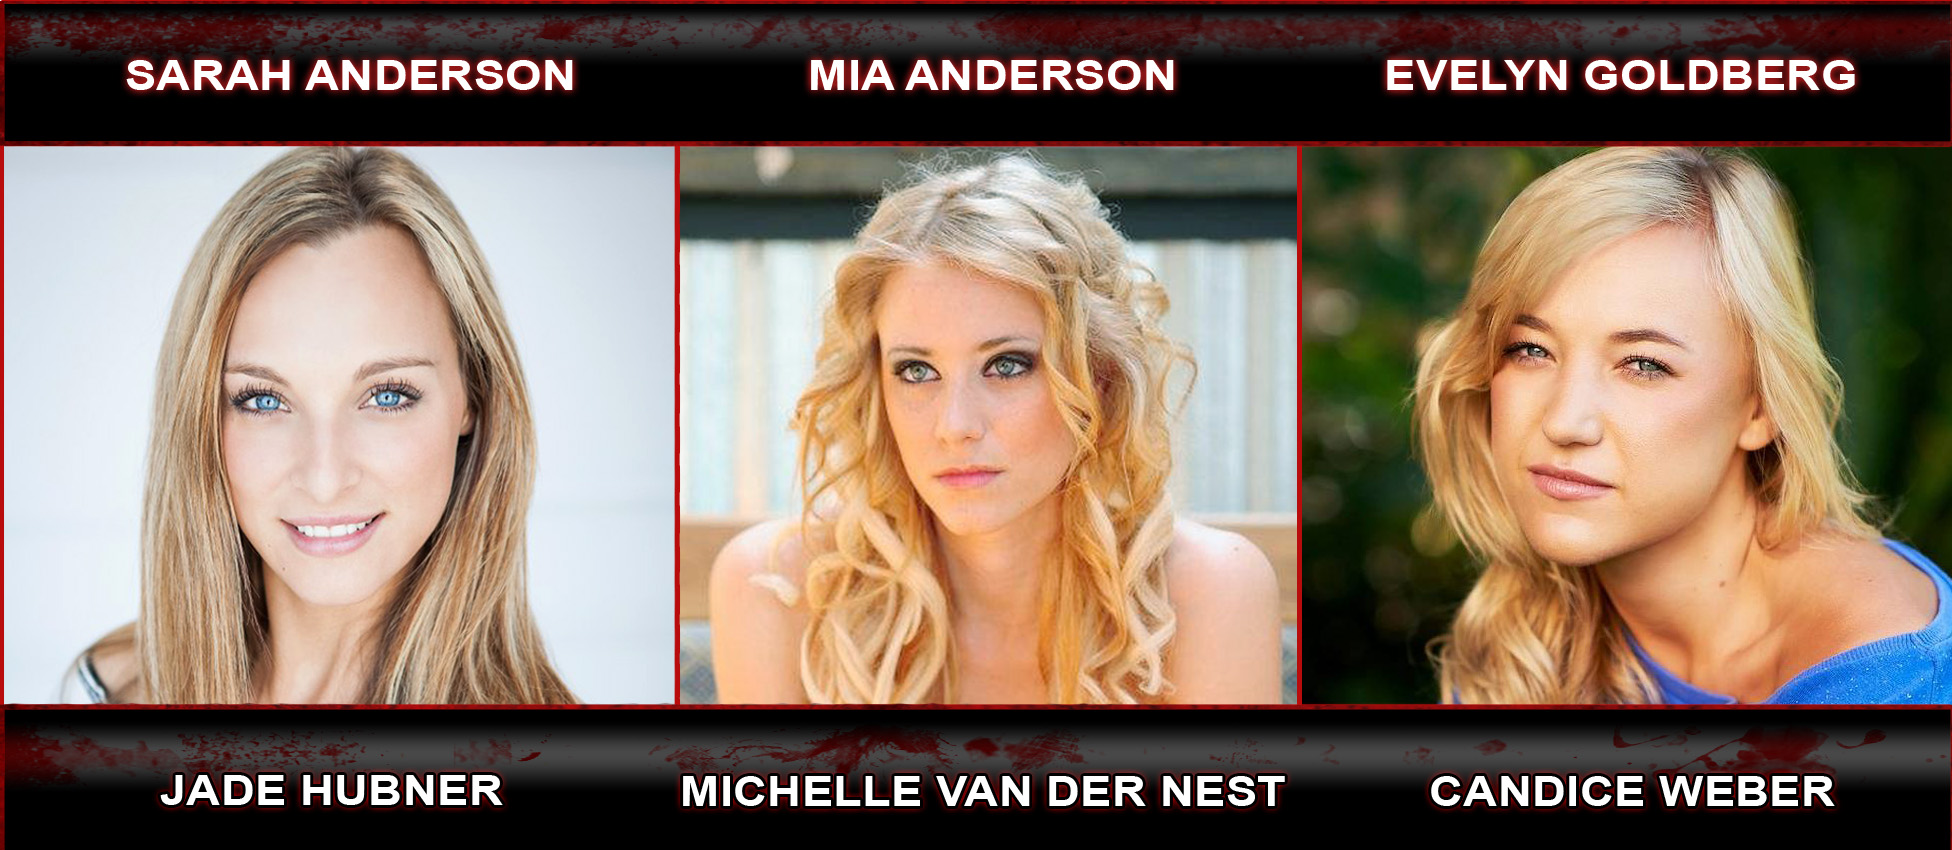 Jade Hubner as Sarah Anderson, Michelle Van Der Nest as Mia Anderson and Candice Weber as Evelyn Goldberg